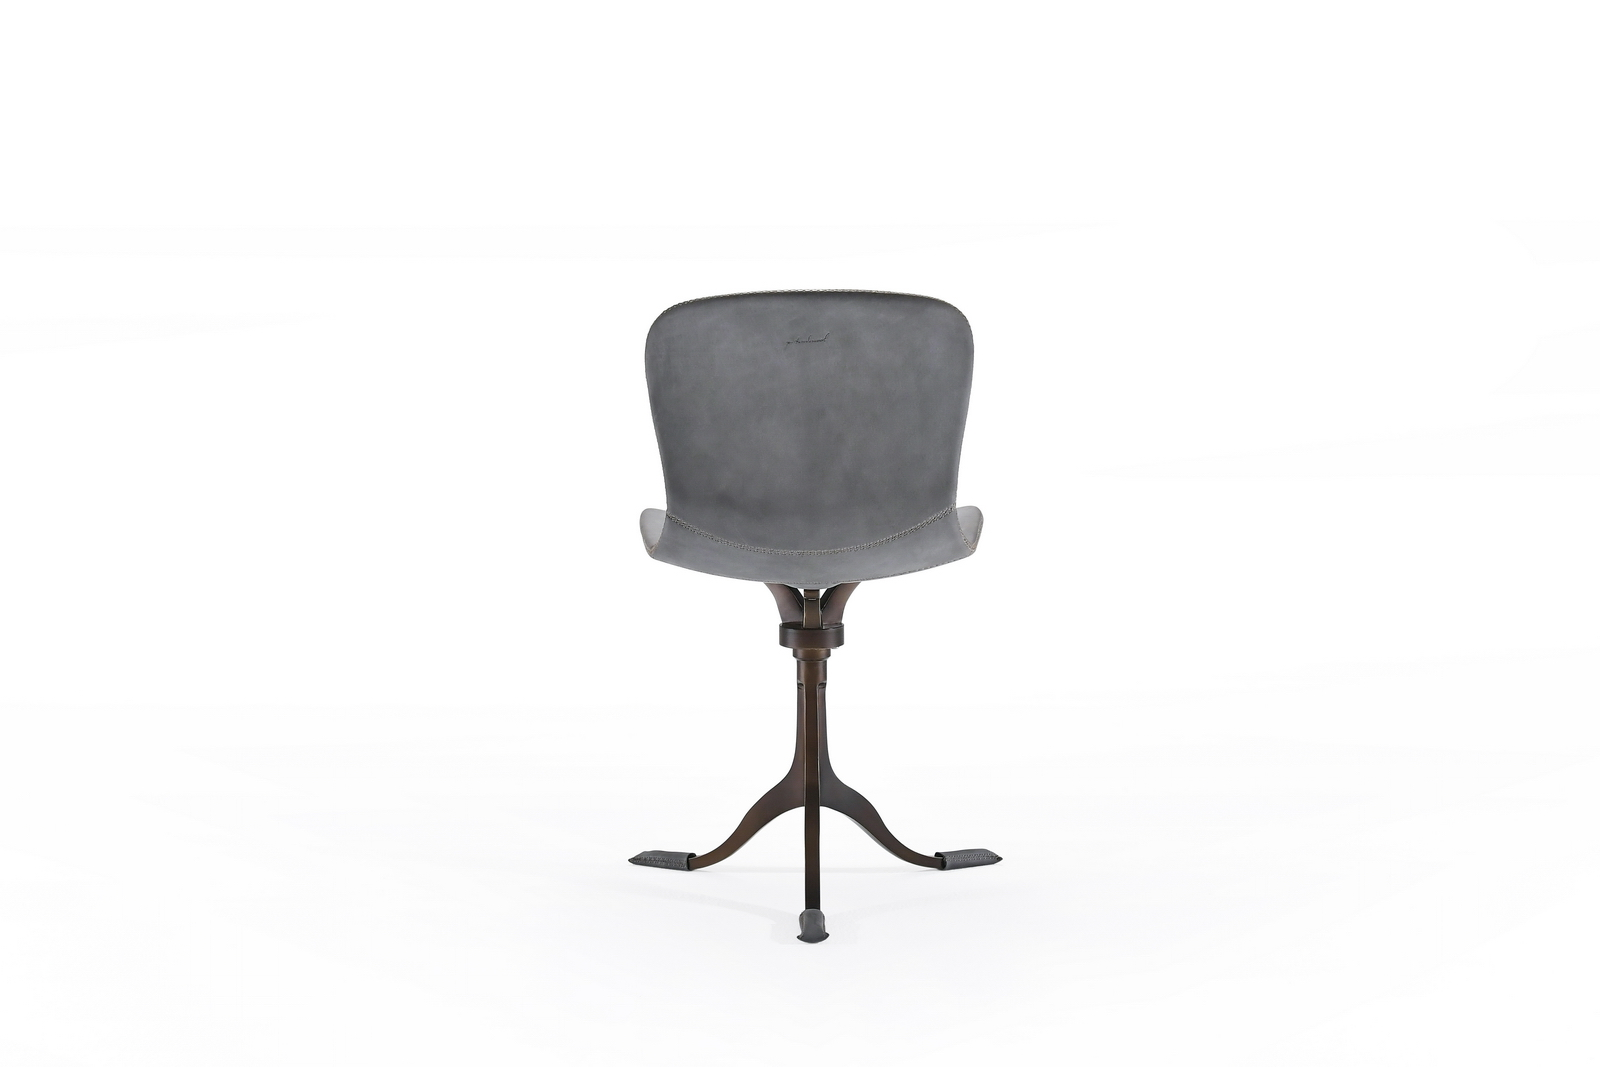 PTendercool-Chair-PT43-BS3-GY-210615-06